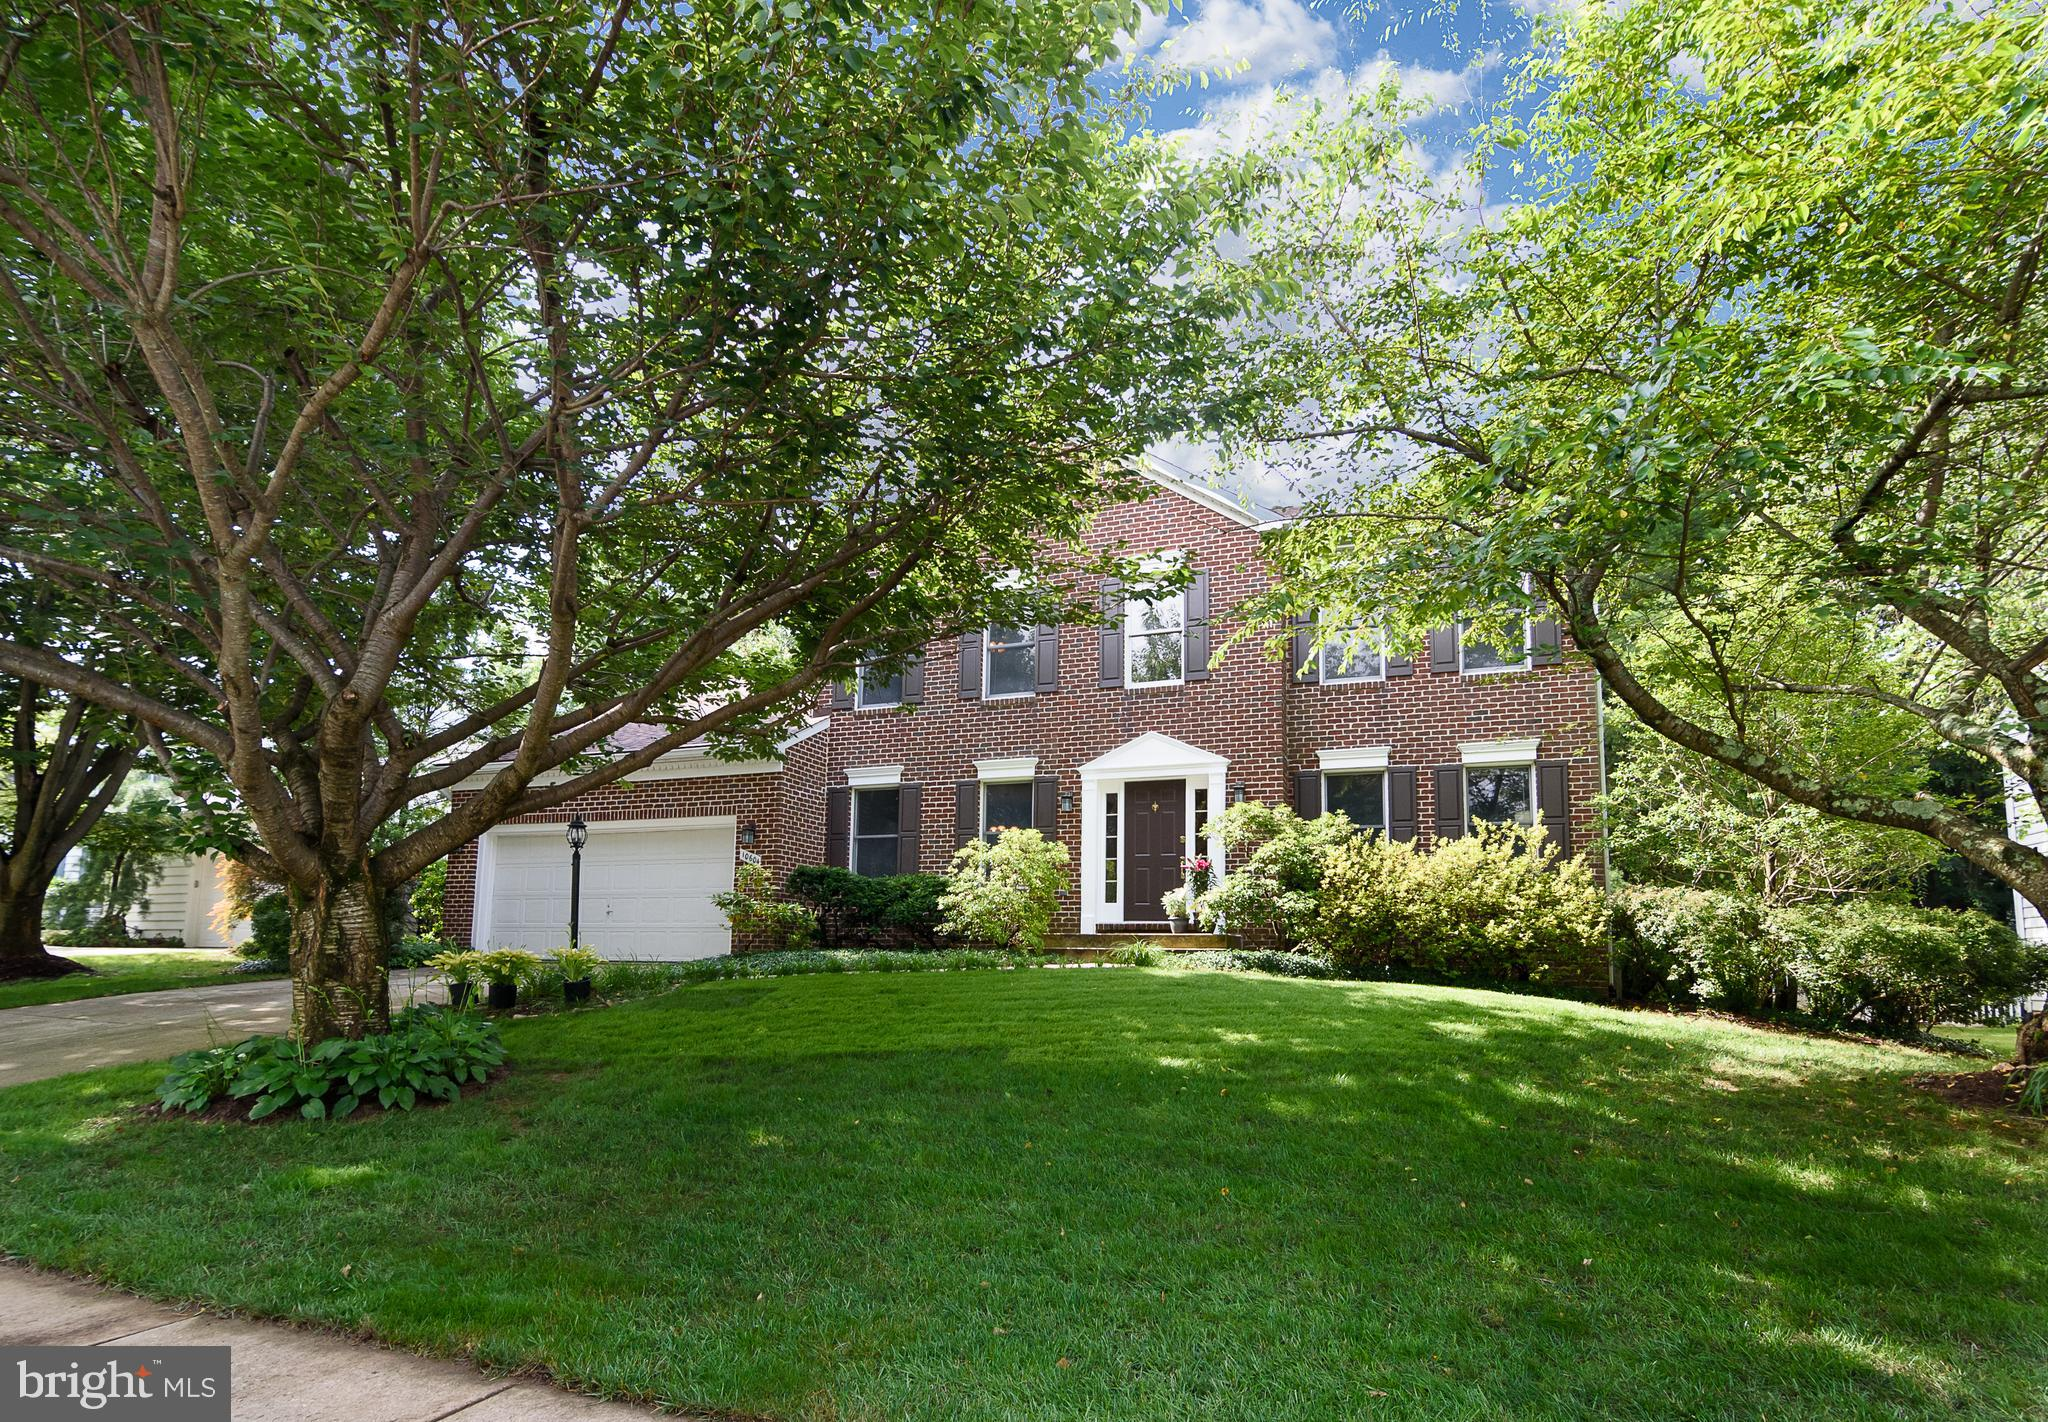 10604 GLASS TUMBLER PATH, COLUMBIA, MD 21044